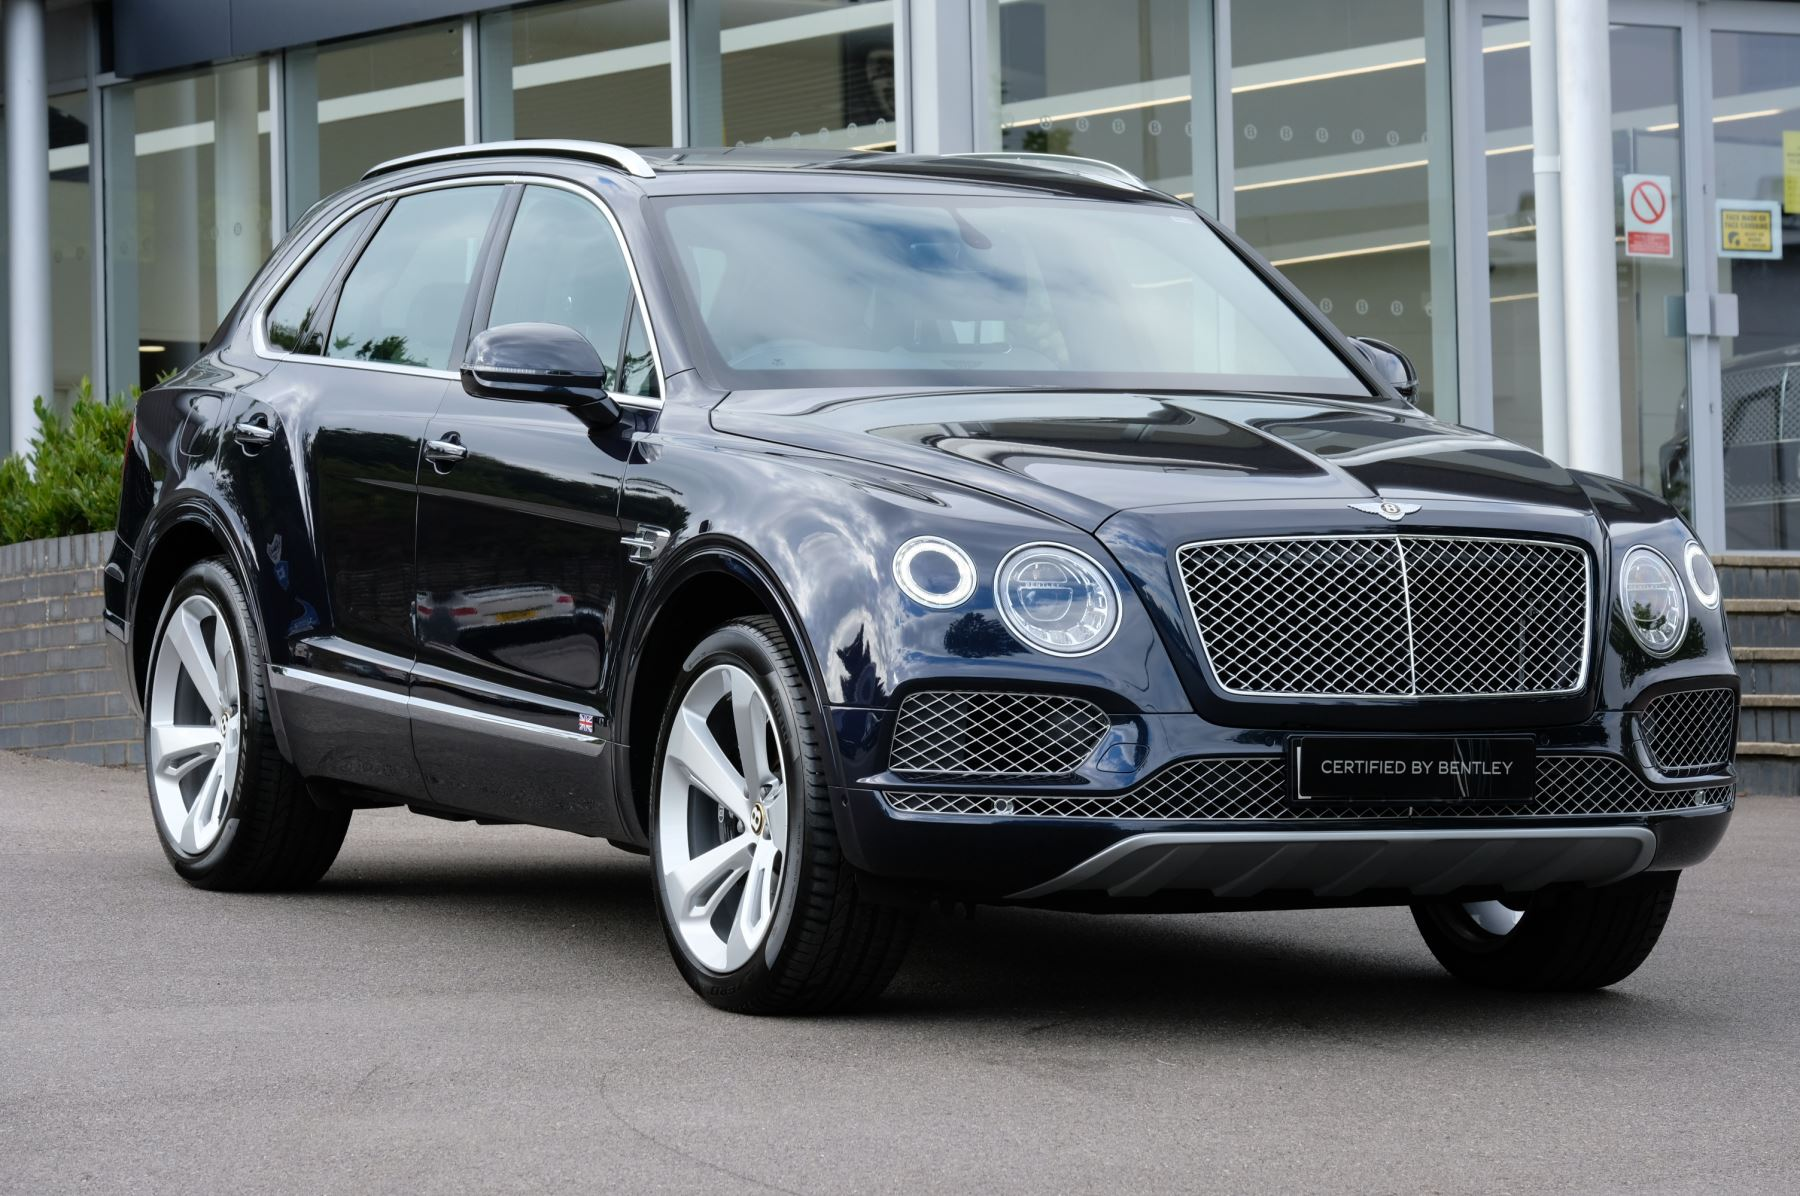 Bentley Bentayga 4.0 V8 5dr including £17,000 of costed options - Centenary Specification Automatic Estate (2019) image